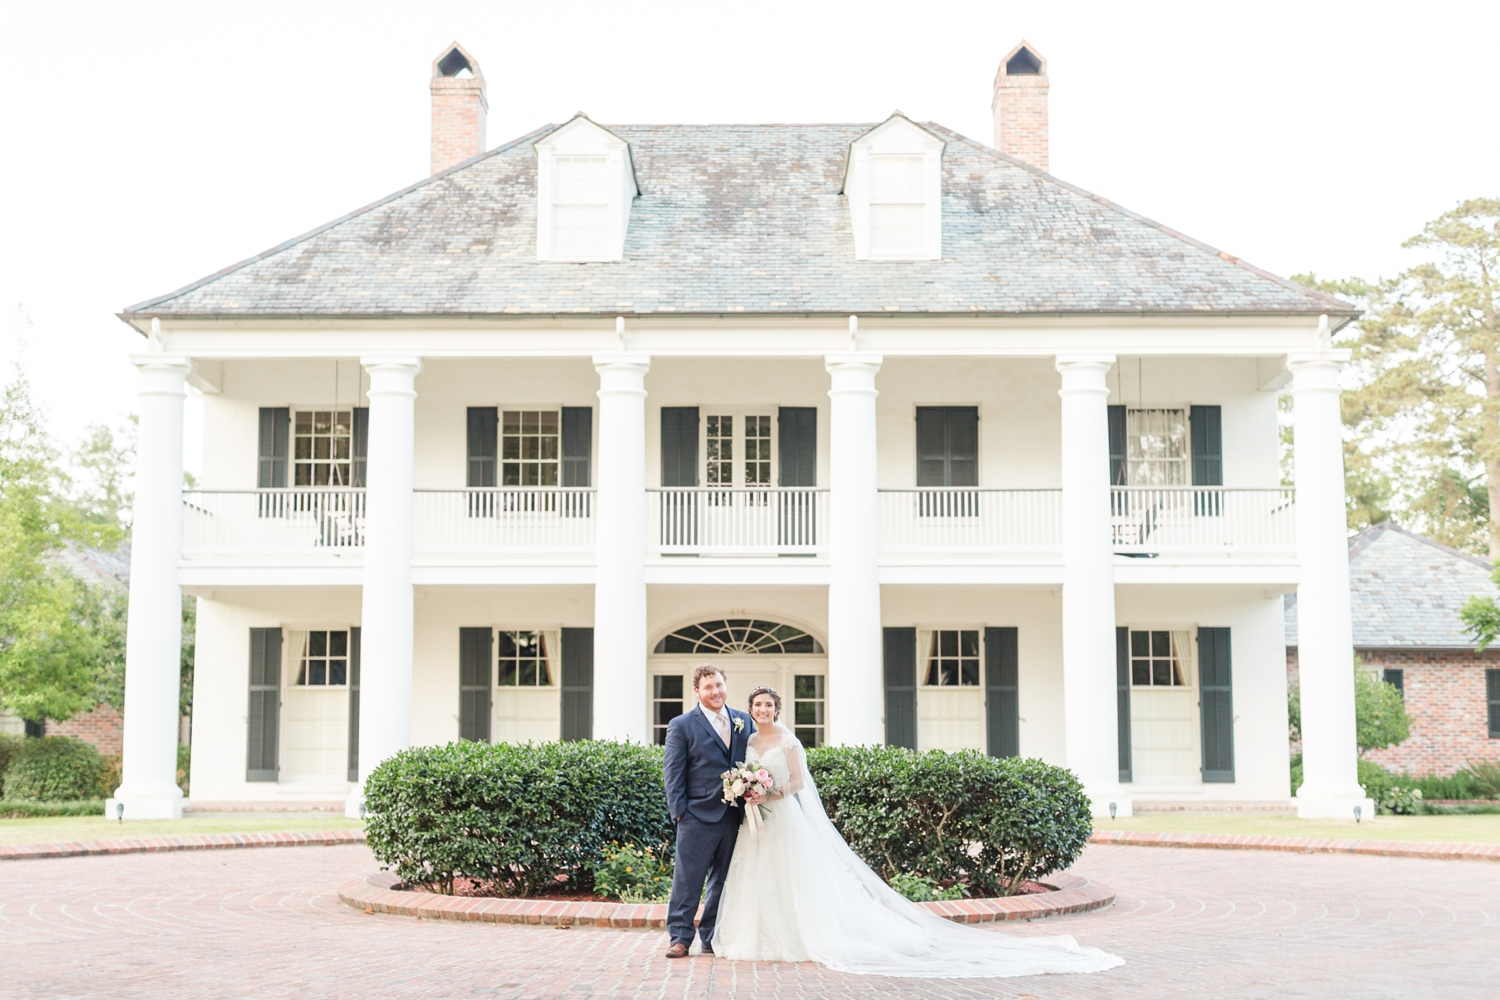 Love all the southern mansions!